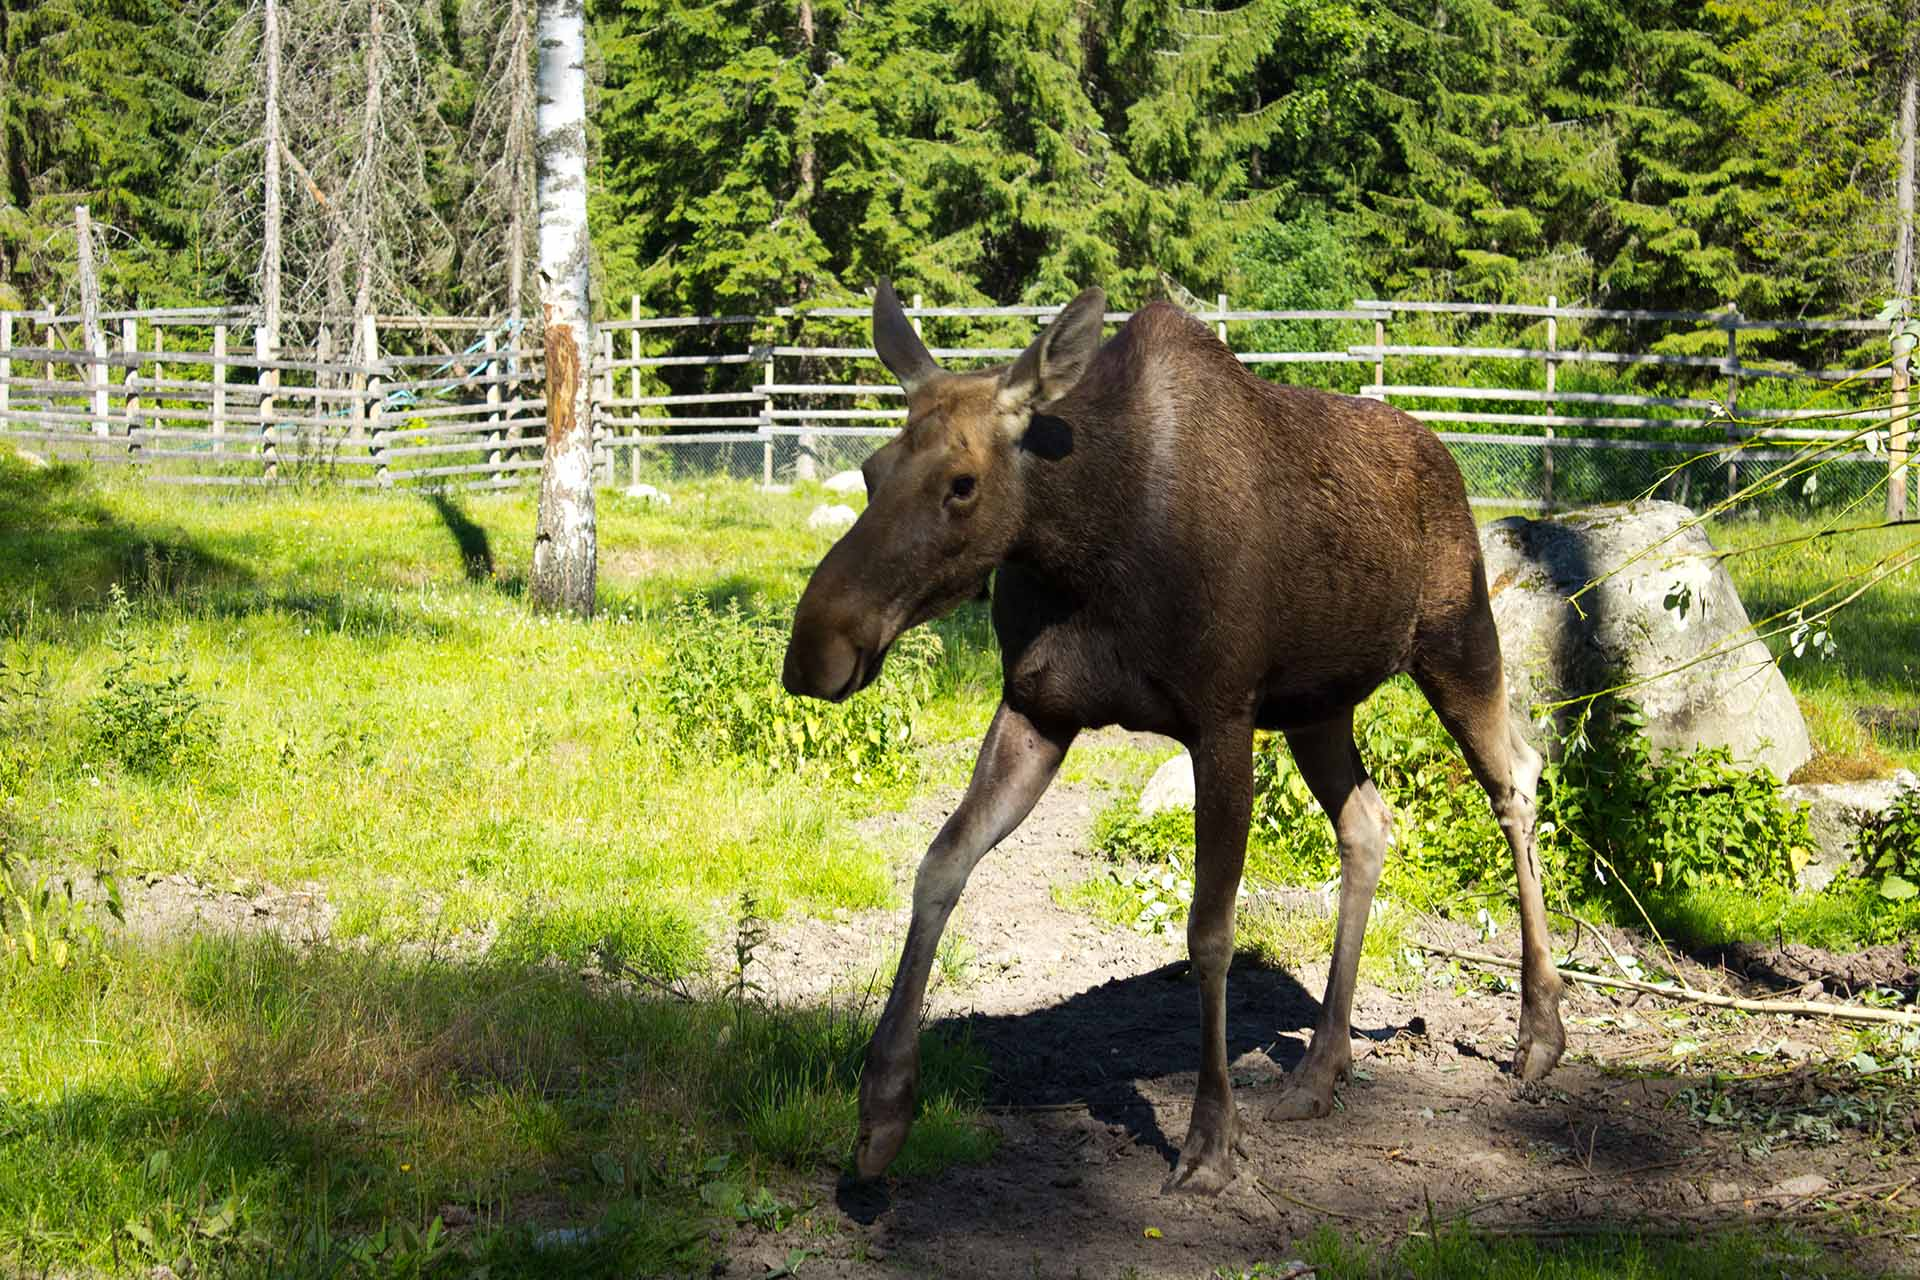 Have you ever kissed a moose?